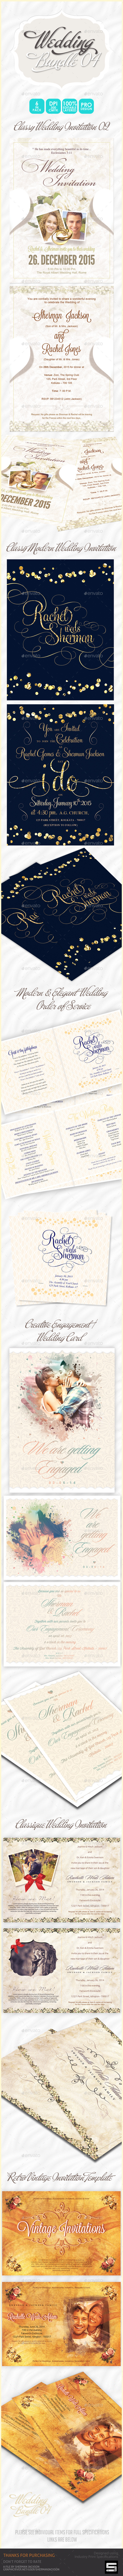 Wedding Invitation Bundle 04 - Weddings Cards & Invites